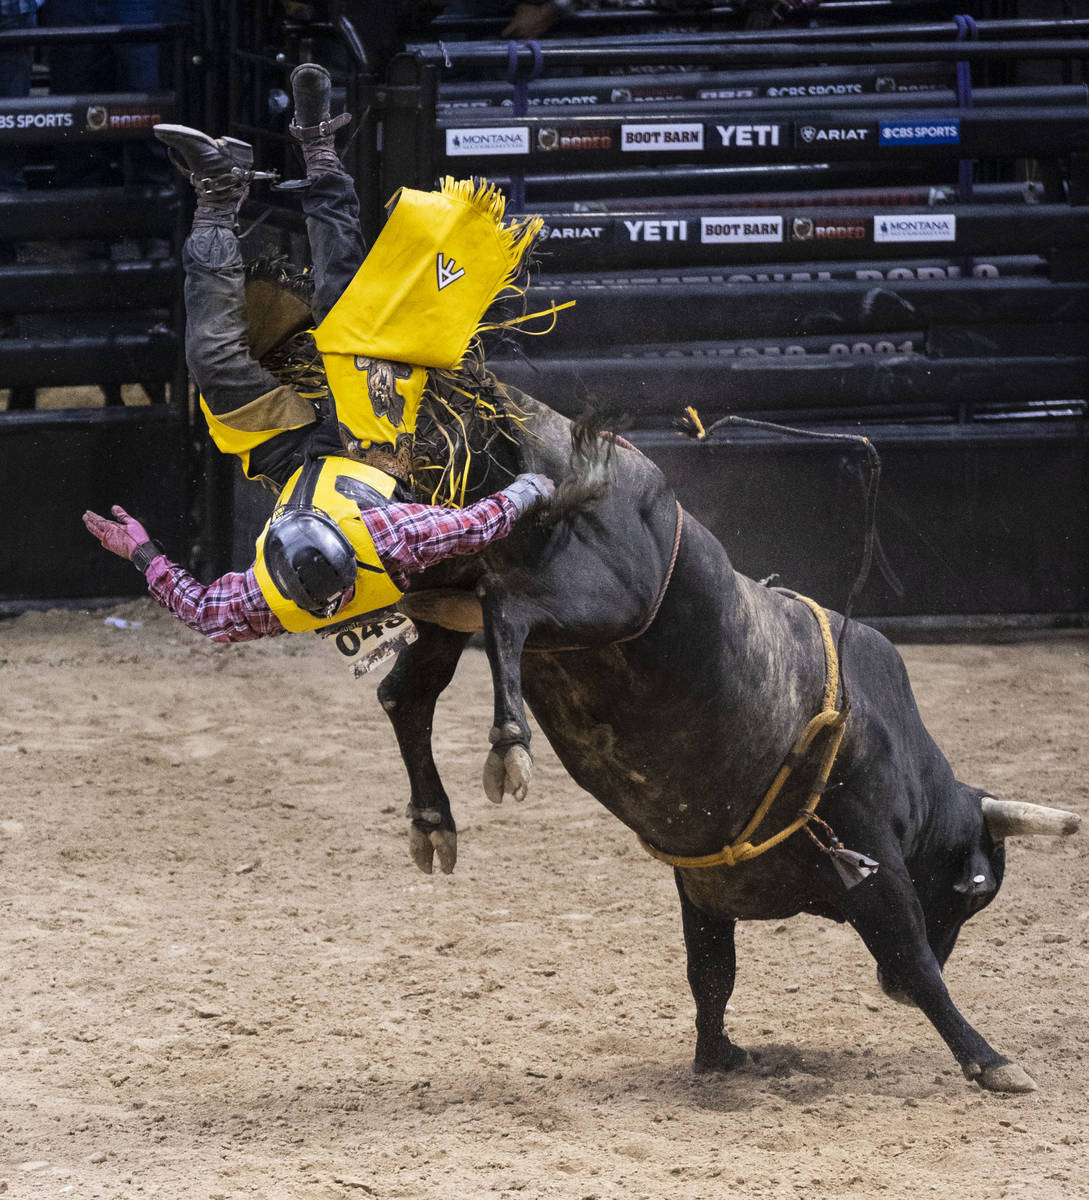 Tank Adams, of Shawnee, Okla., is thrown while atop of Red Velvet as he competes Bull Riding at ...